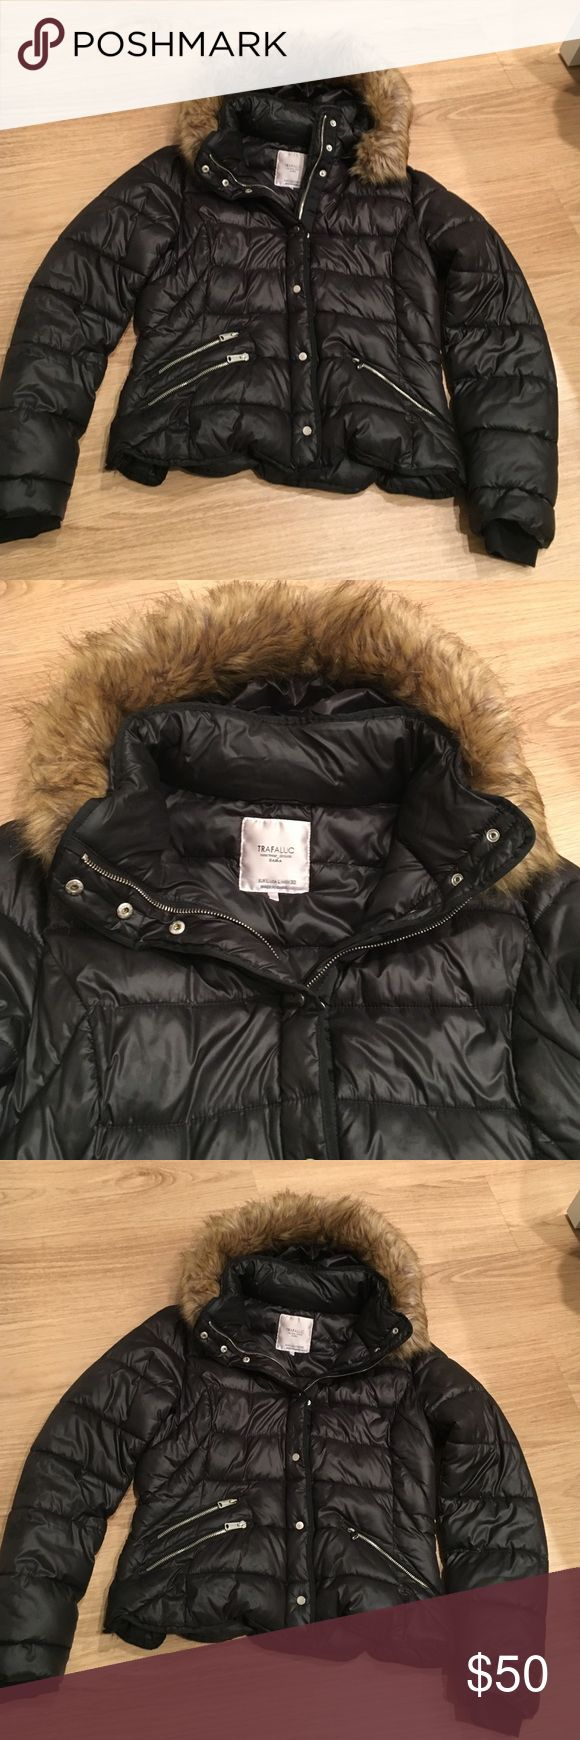 TRAFALUC ZARA winter jacket black sz L excellent 2-3 times wear women TRAFALUC ZARA black winter women jacket sz L long 23 in sleeve 26 in bust 21 in very worm black color the fur it's removable .. NO TRADE!!! Zara Jackets & Coats Trench Coats